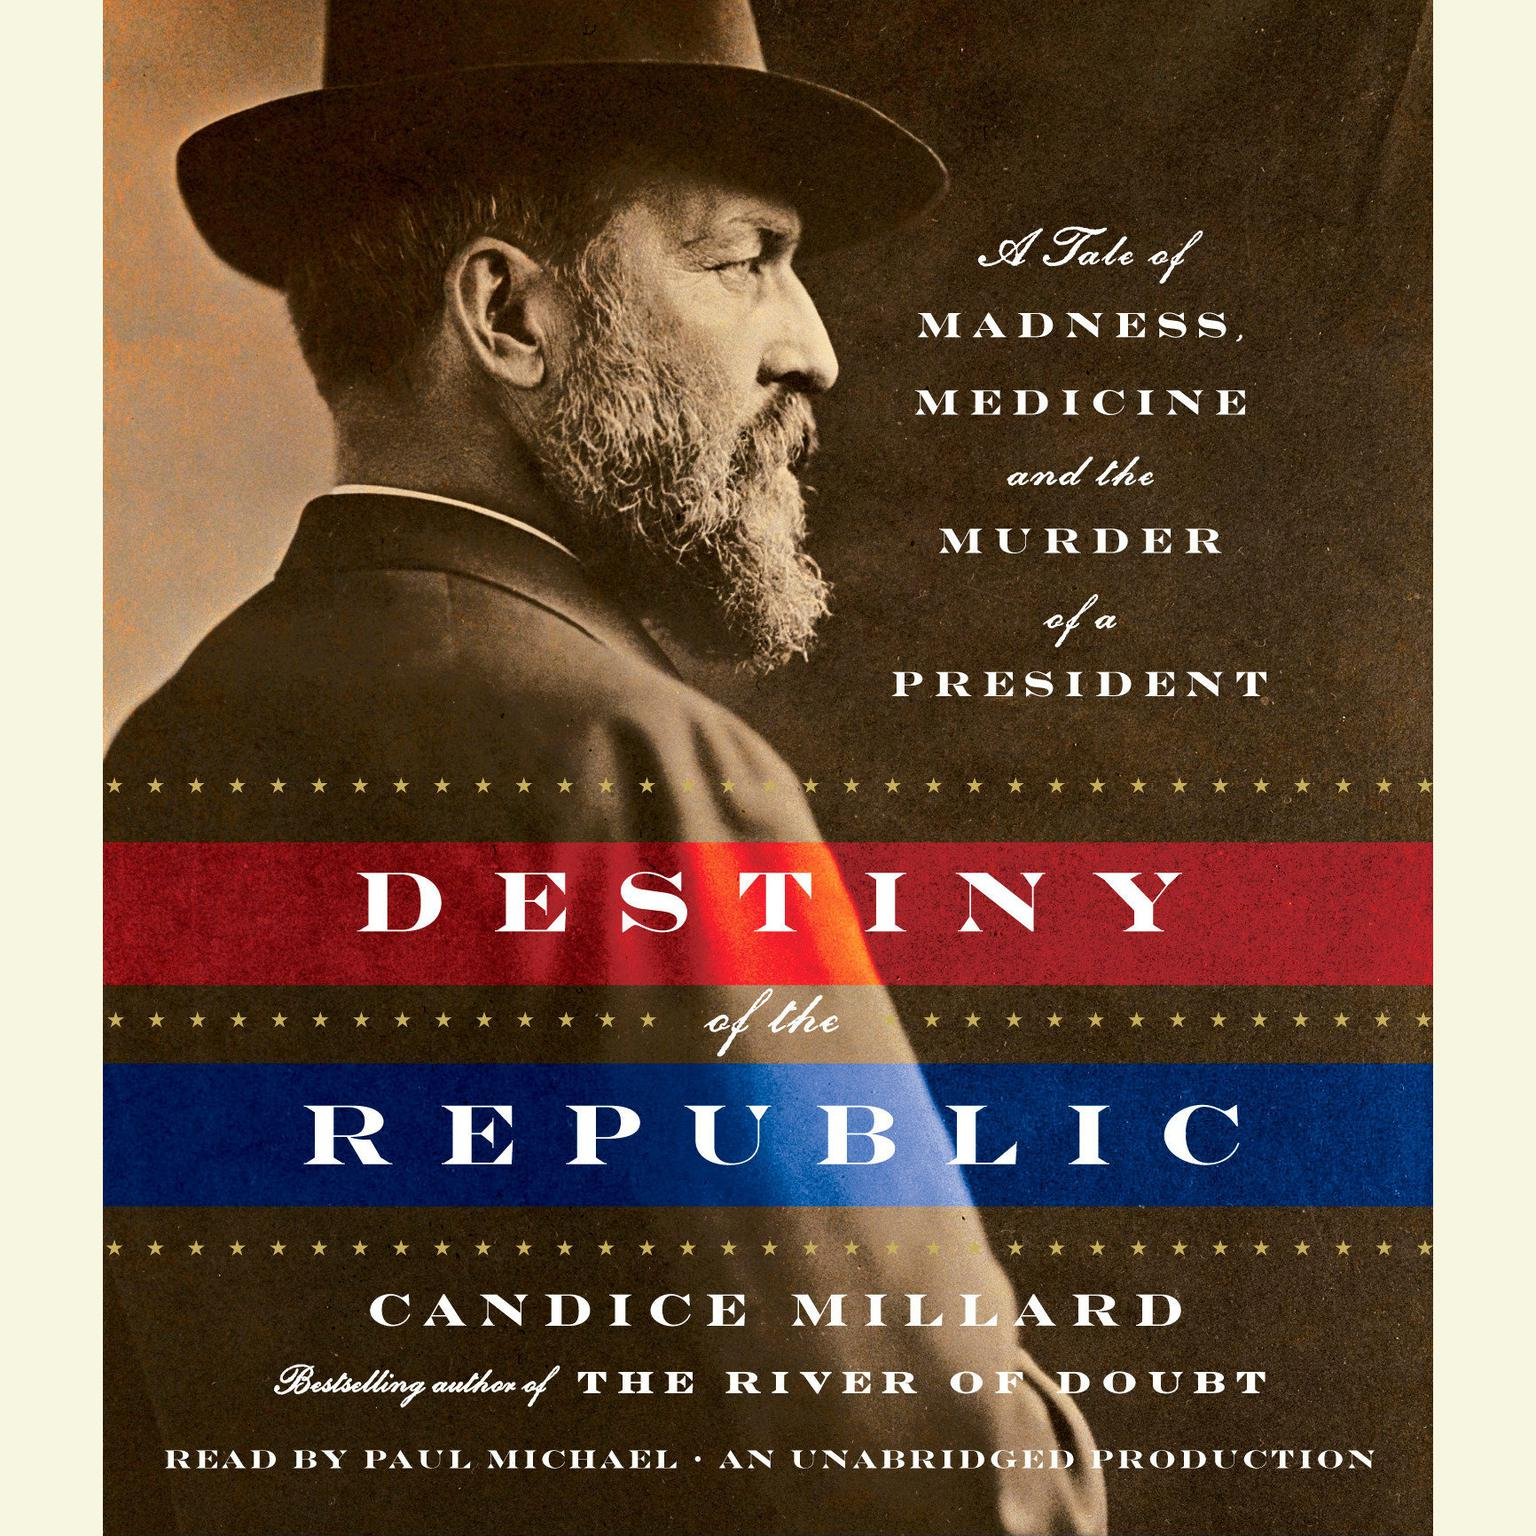 Printable Destiny of the Republic: A Tale of Madness, Medicine and the Murder of a President Audiobook Cover Art